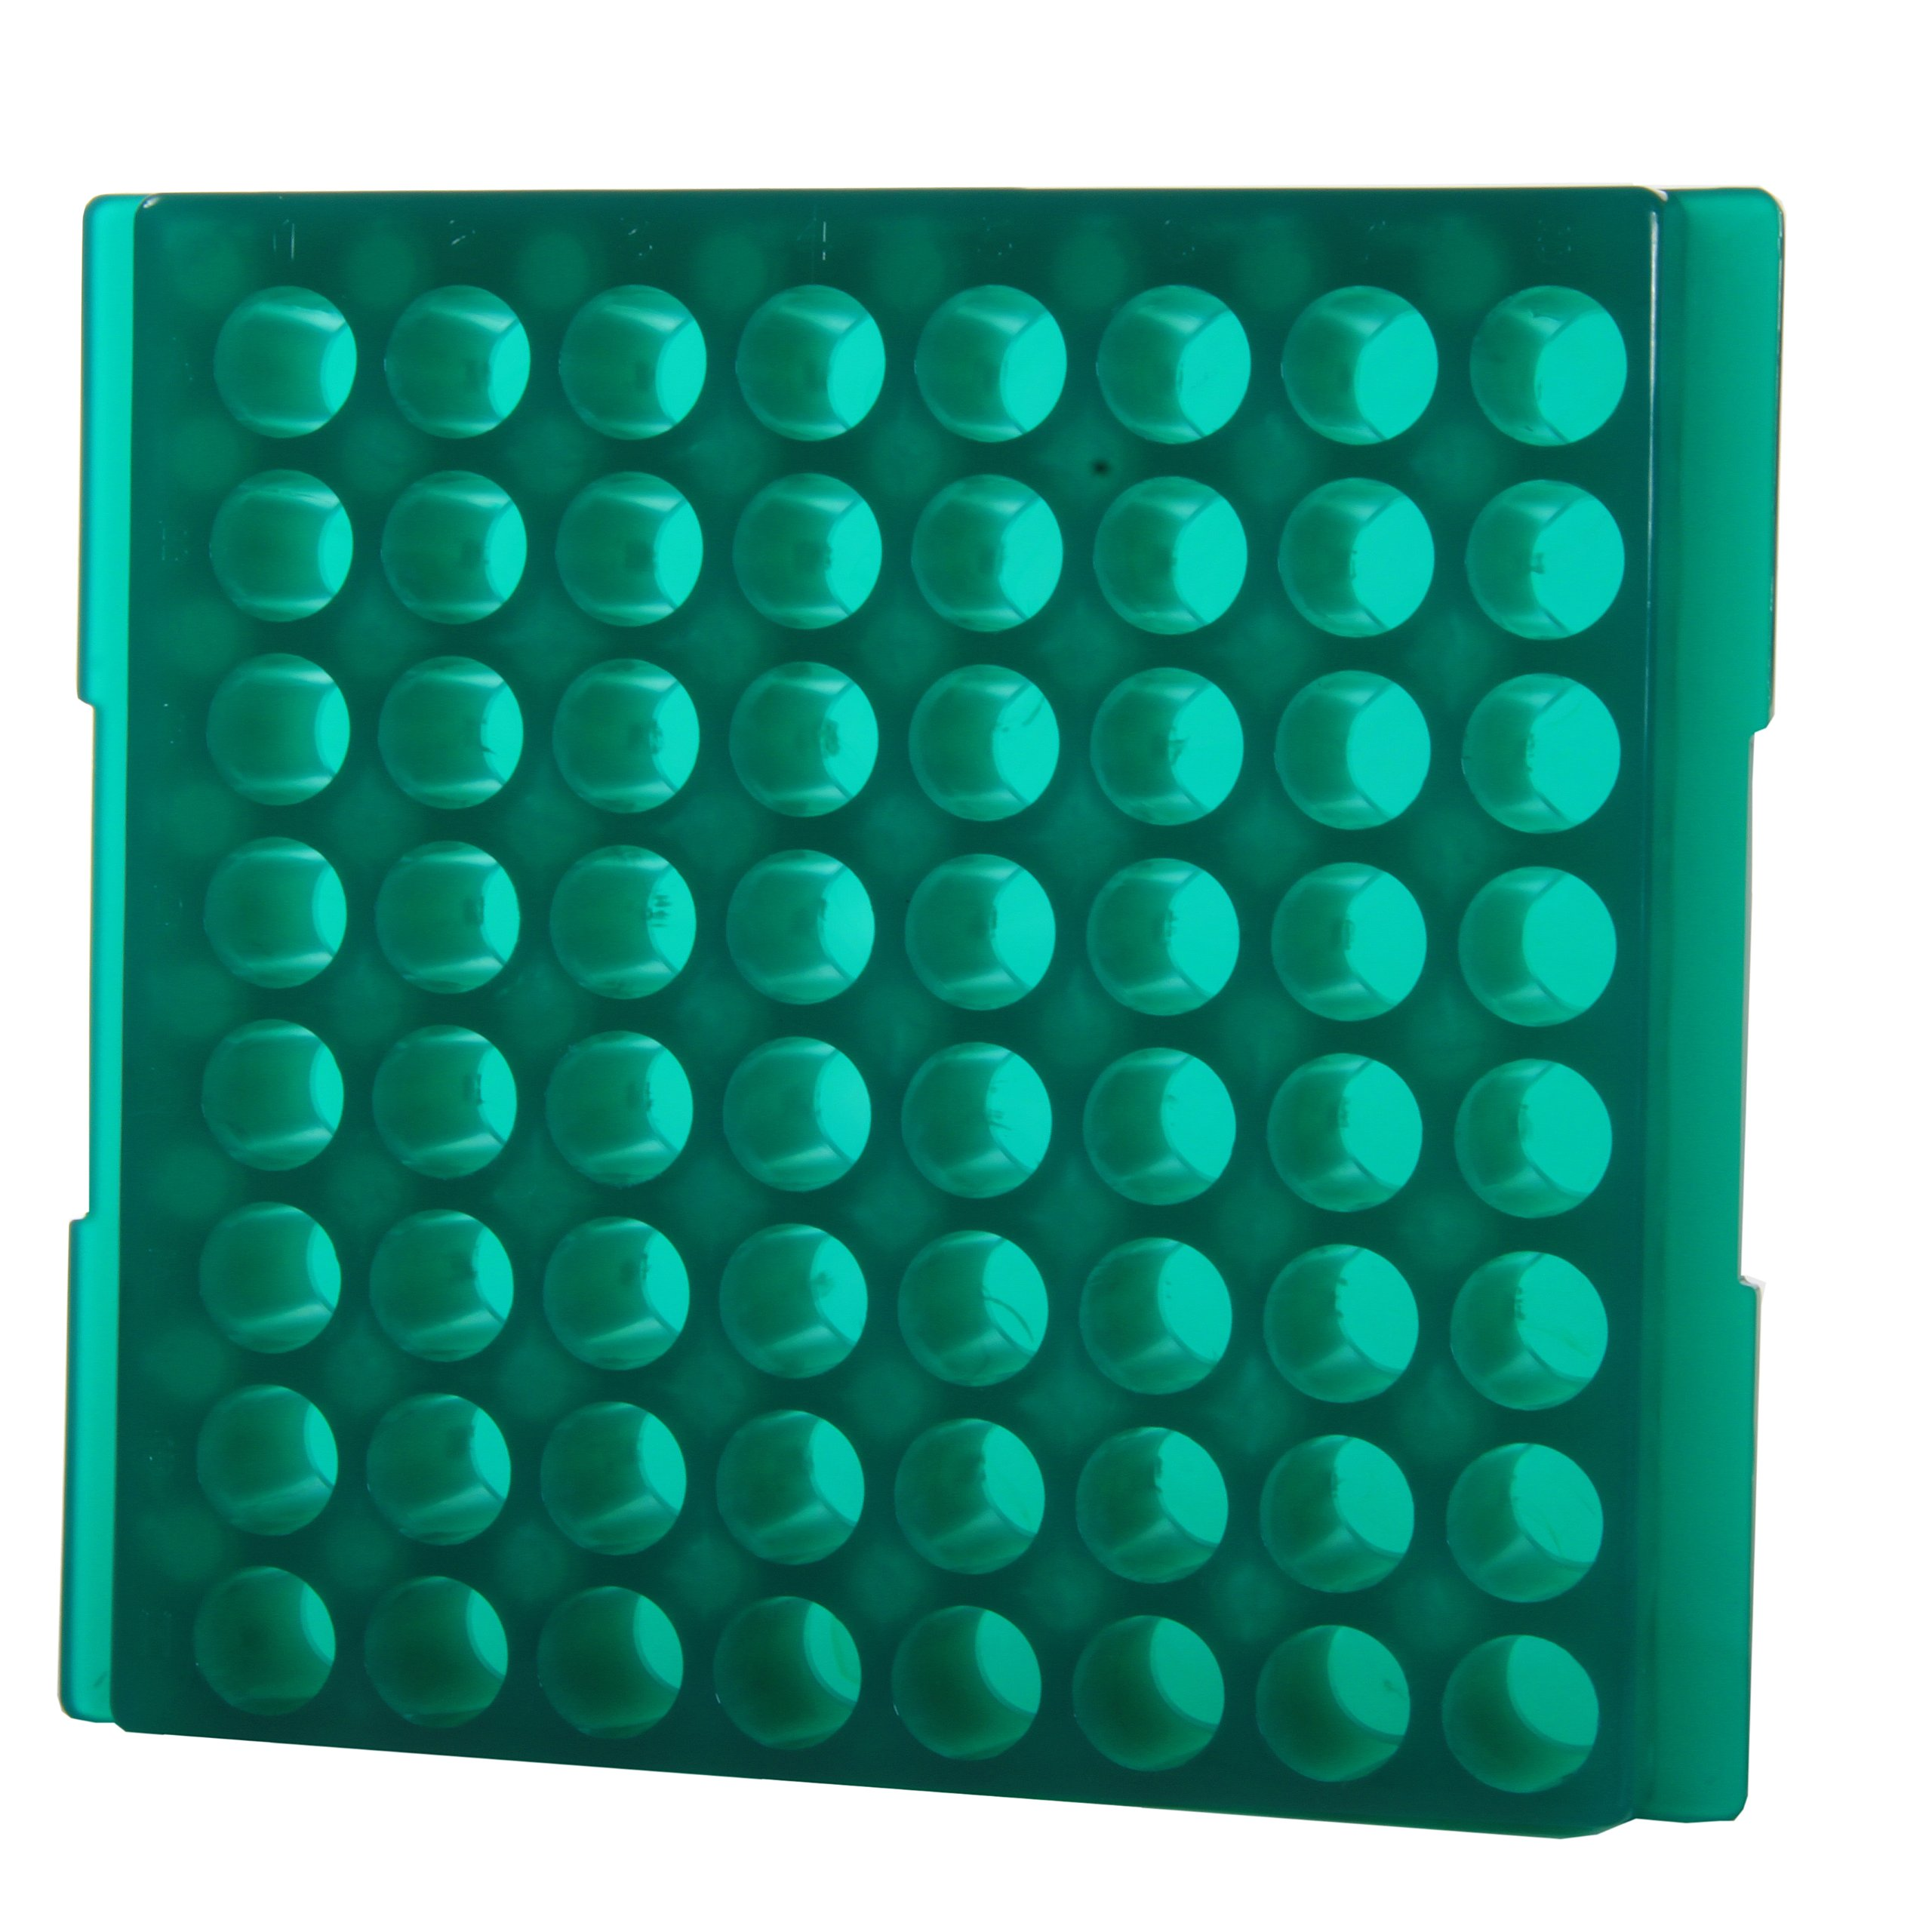 Bio Plas 0083F Fluorescent Green Polypropylene Reversible 1.5mL and 2.0mL Microcentrifuge Tube Rack, 64 Places (Pack of 5)